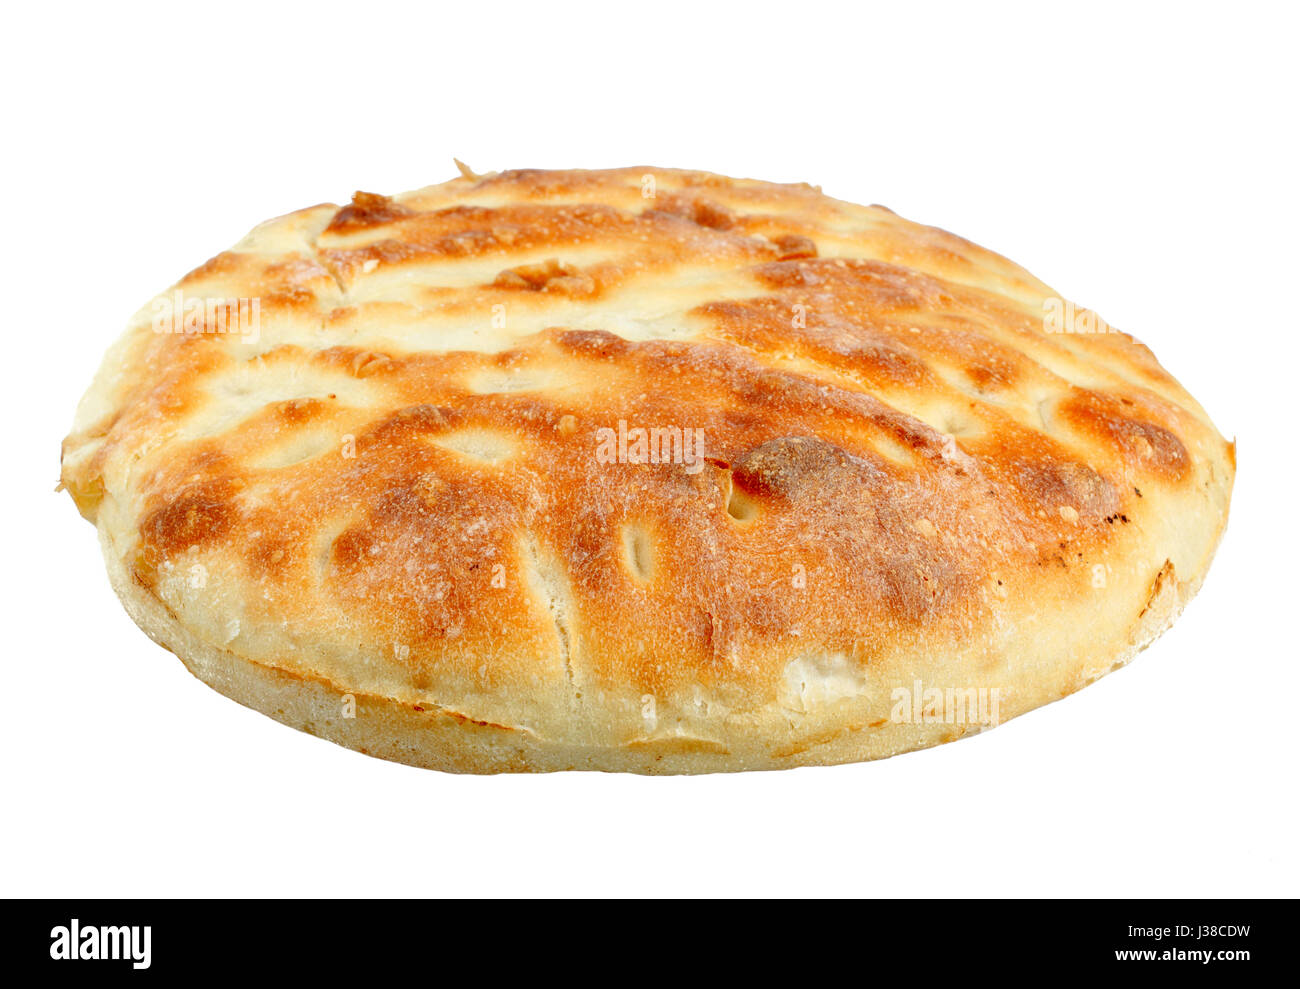 Traditional homemade round bread isolated on a white background - Stock Image